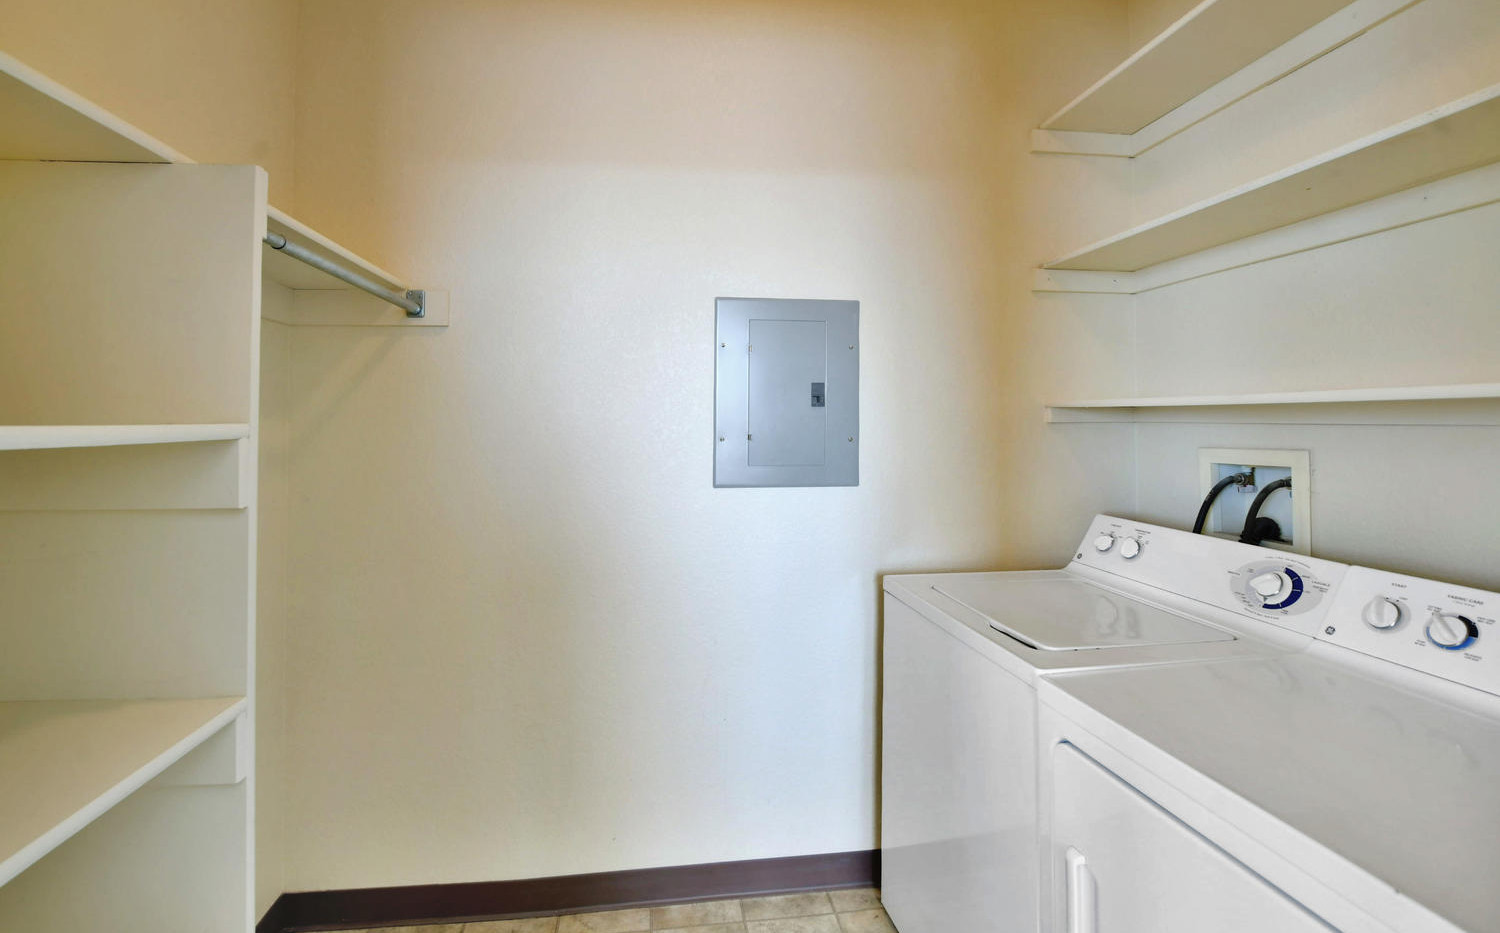 Two bedroom laundry room